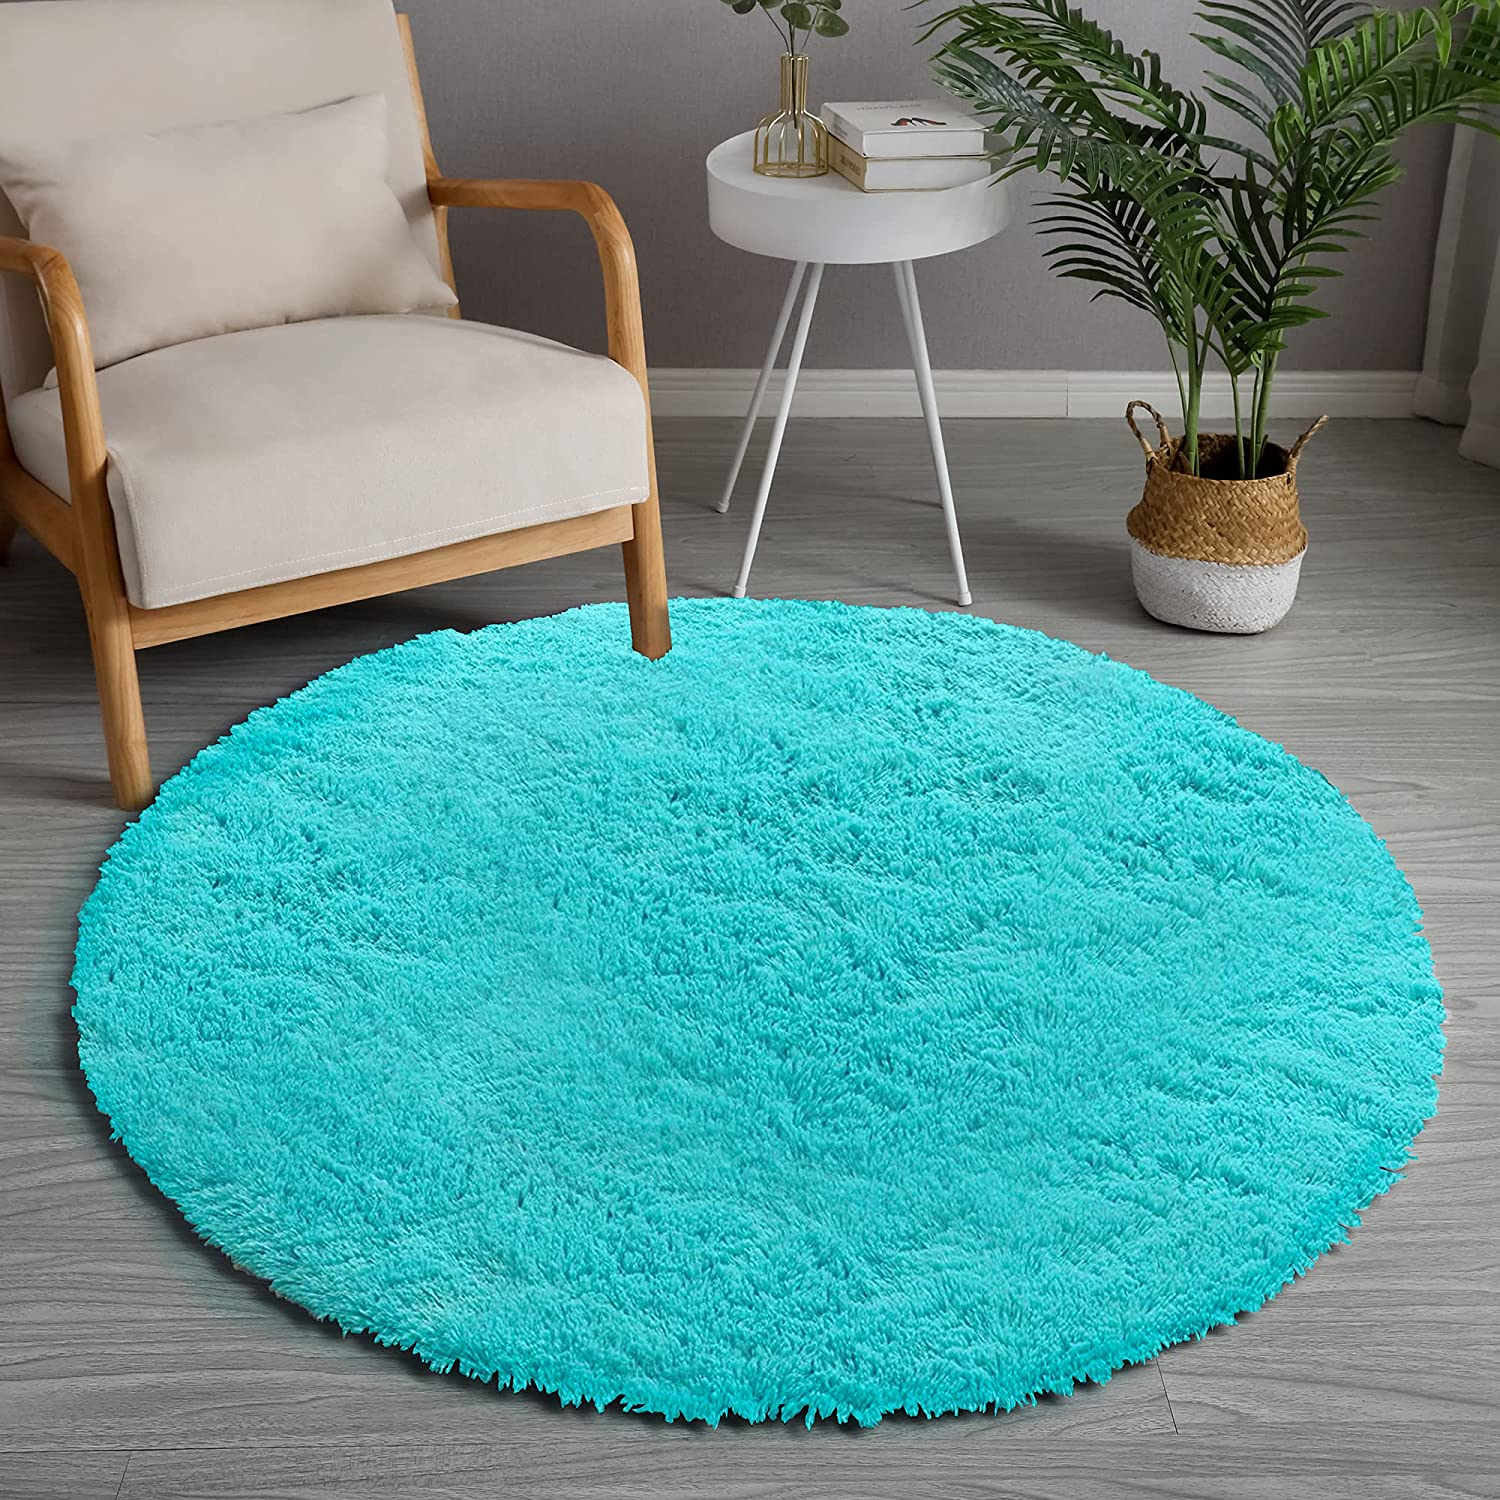 GKLUCKIN Shag Ultra Soft Area Rug Blue Round Teal Ranking TOP18 5' low-pricing Fluffy